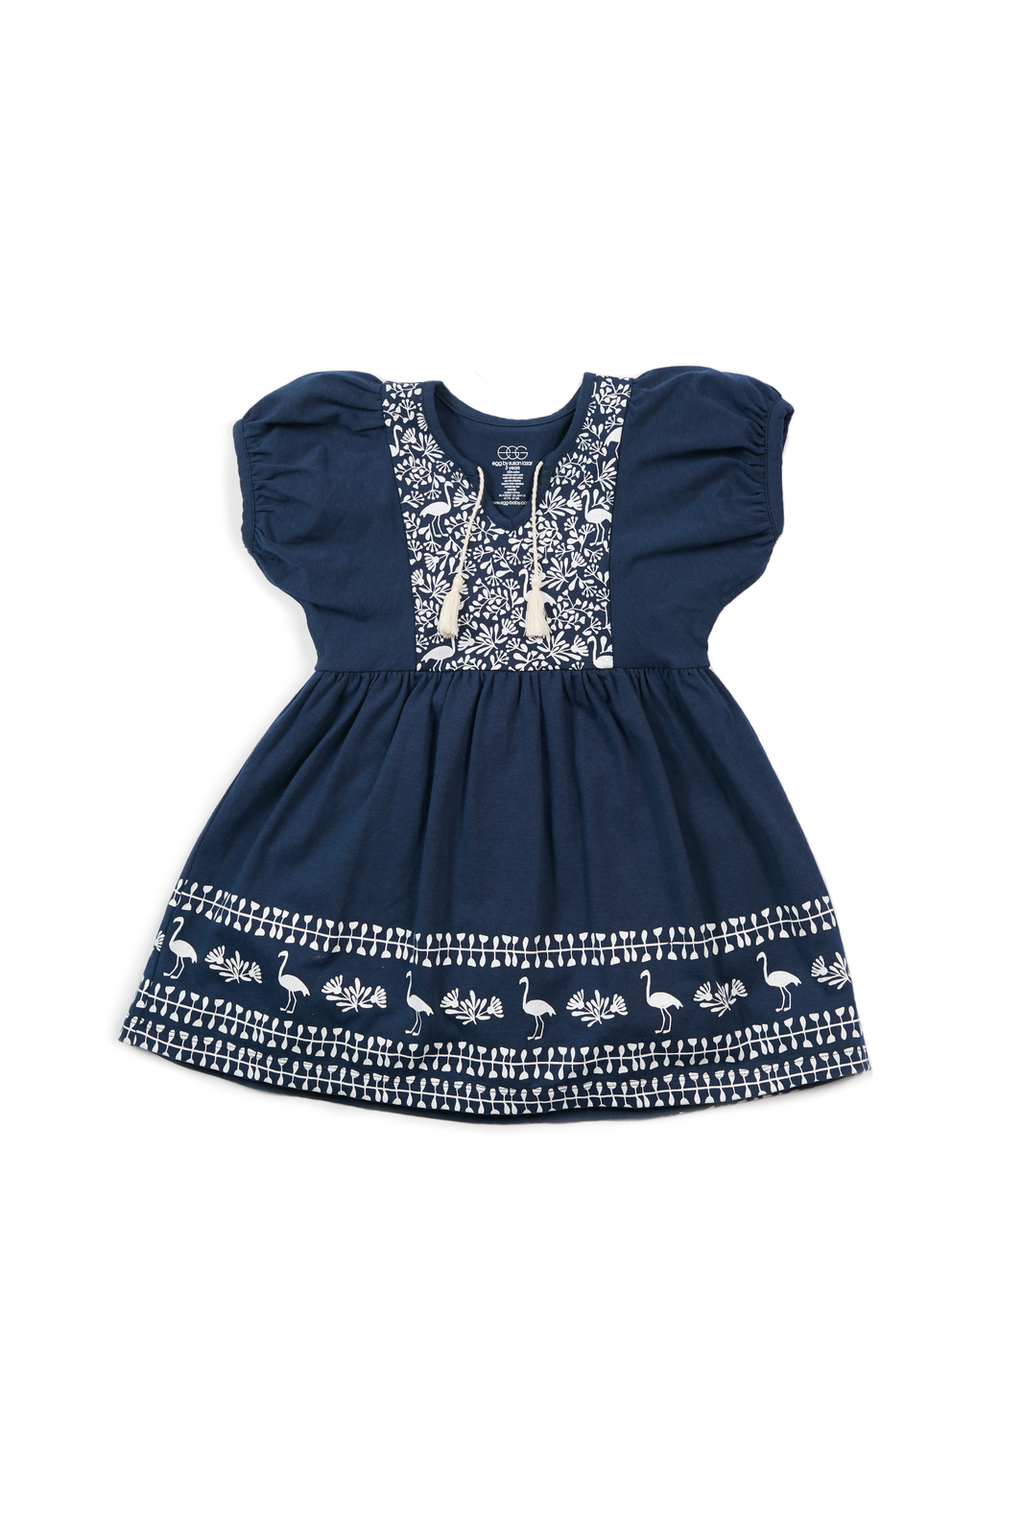 Egg By Susan Lazar  - Bridget Dress - Navy